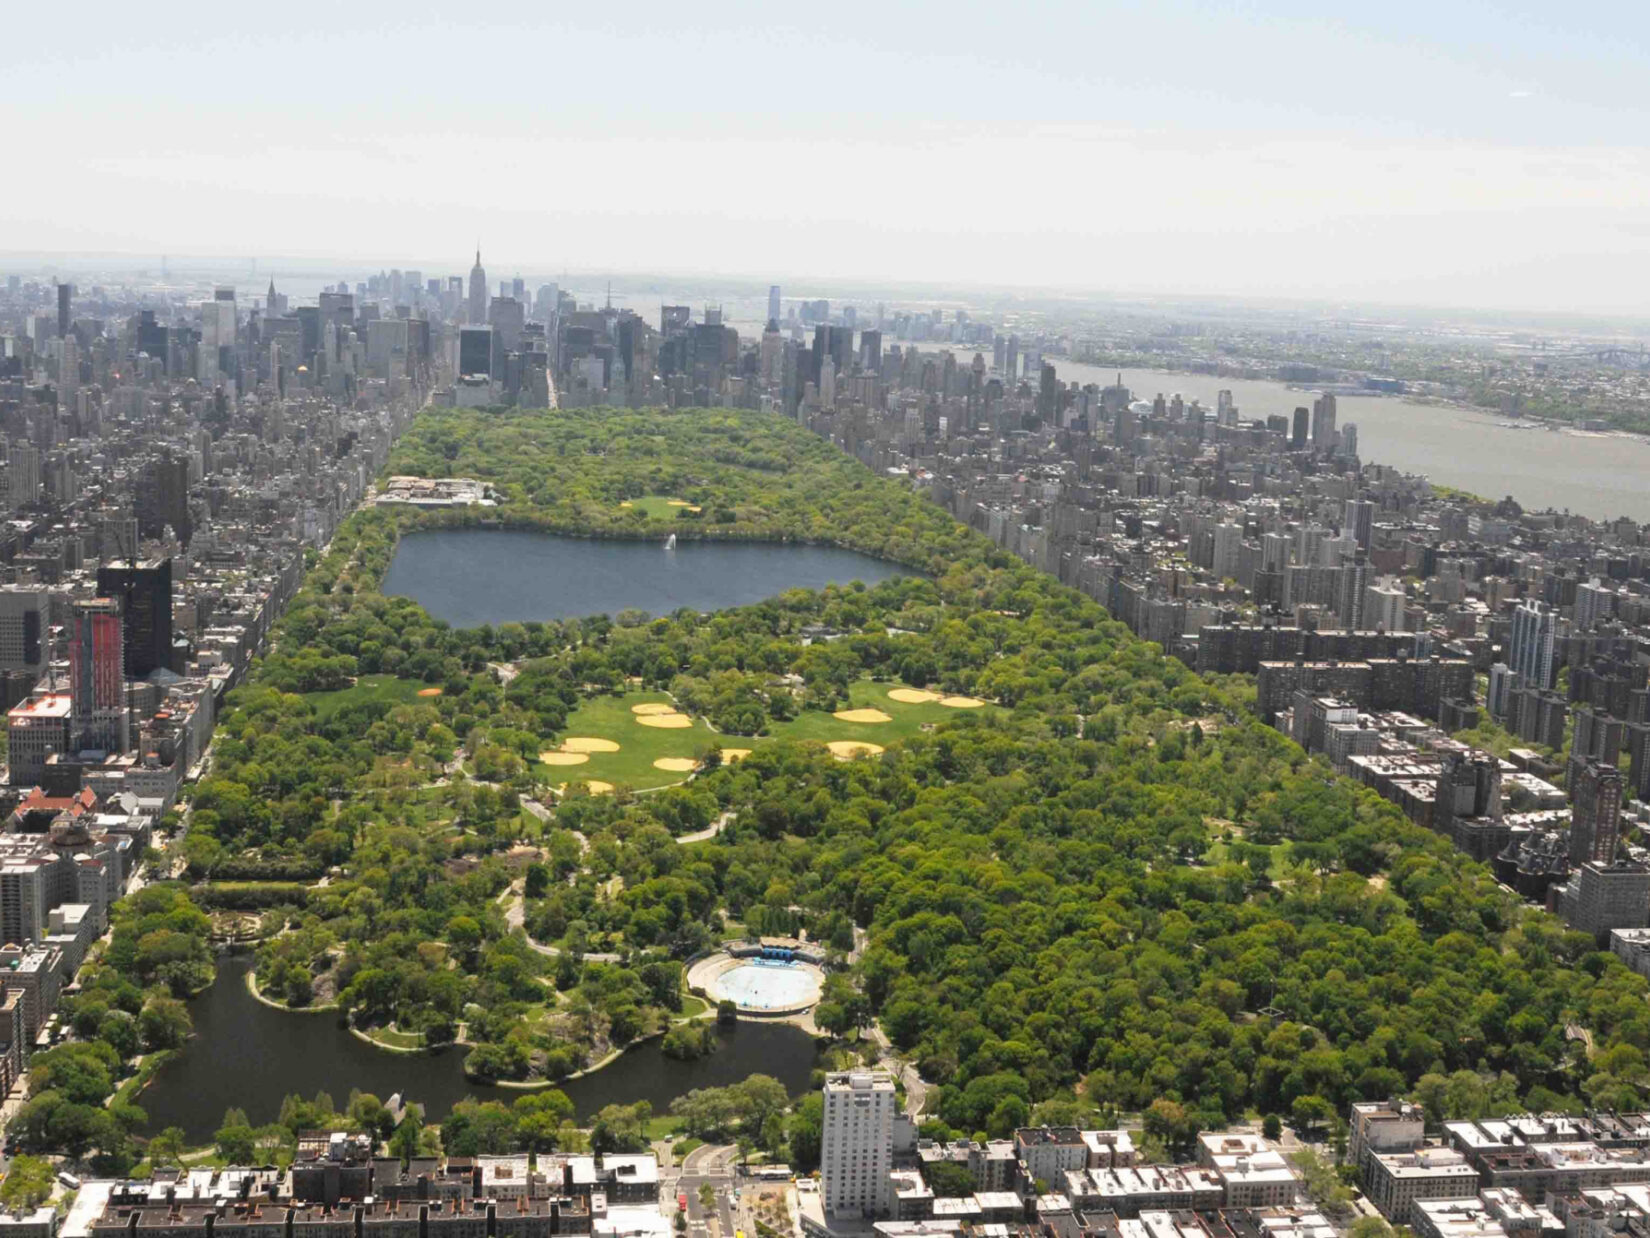 Central Park Aerial looking south credit the Central Park Conservancy